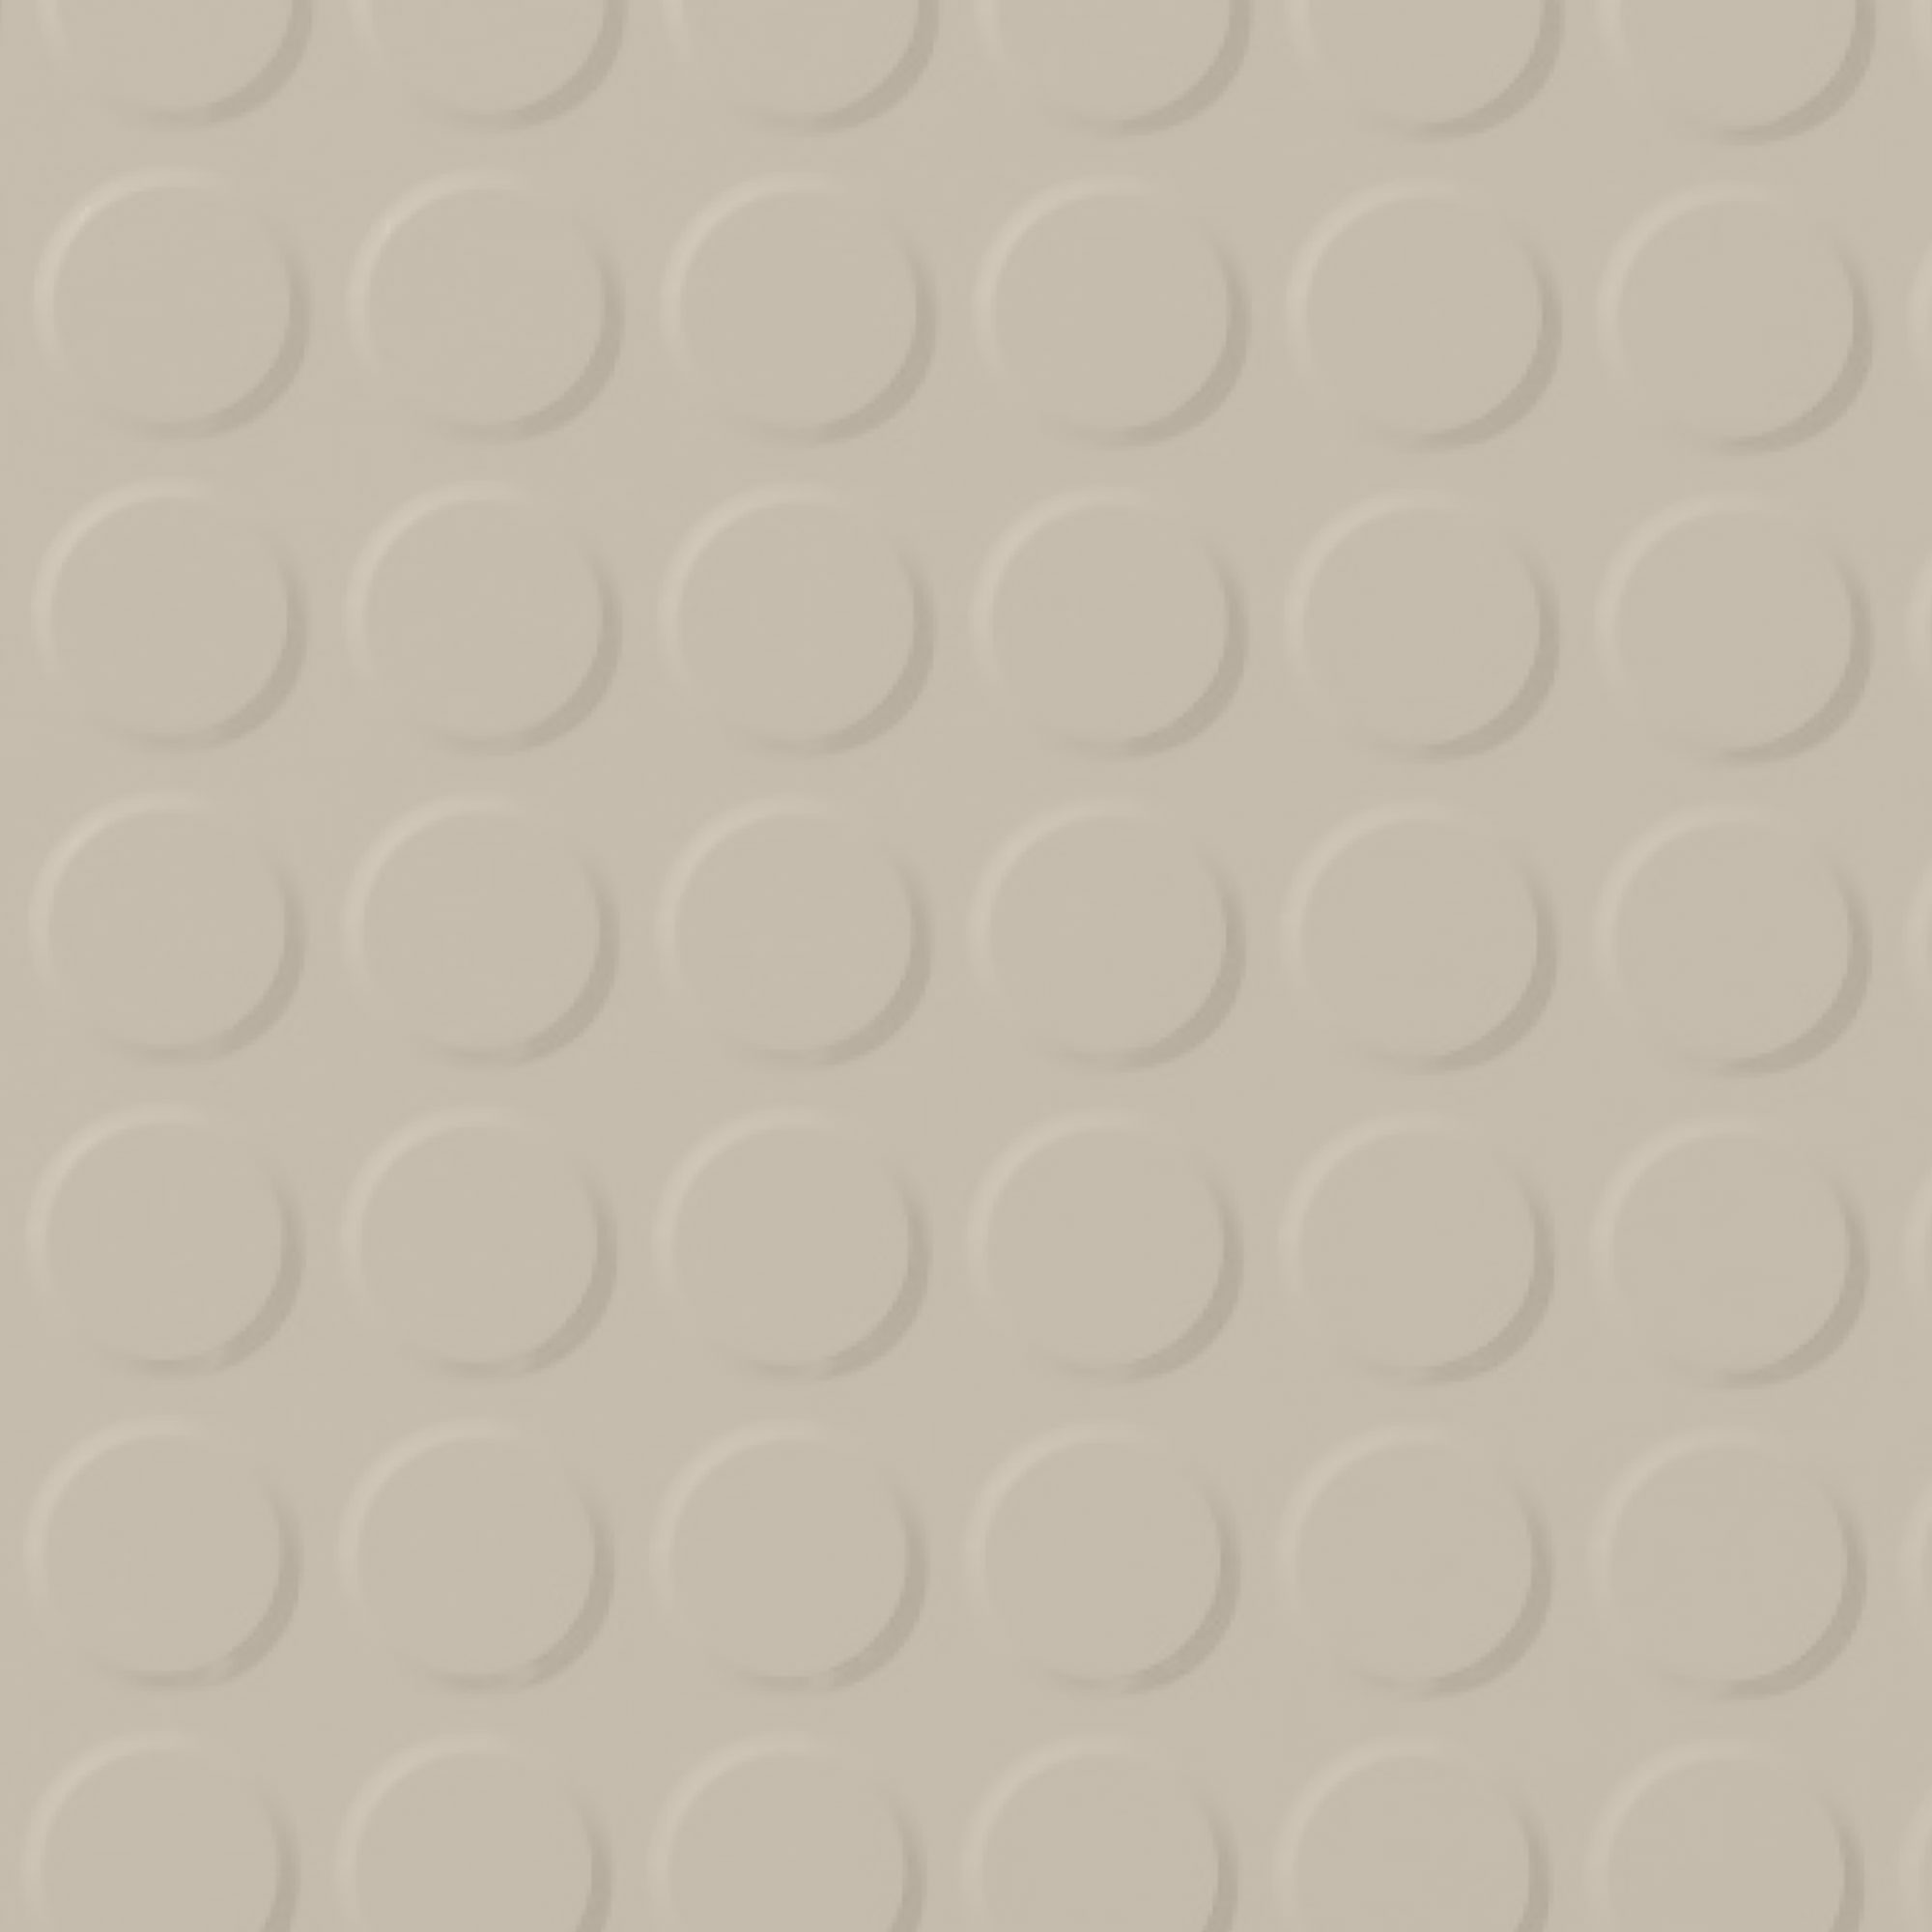 Roppe Rubber Tile 900 - Vantage Raised Circular Design (996) Natural 122